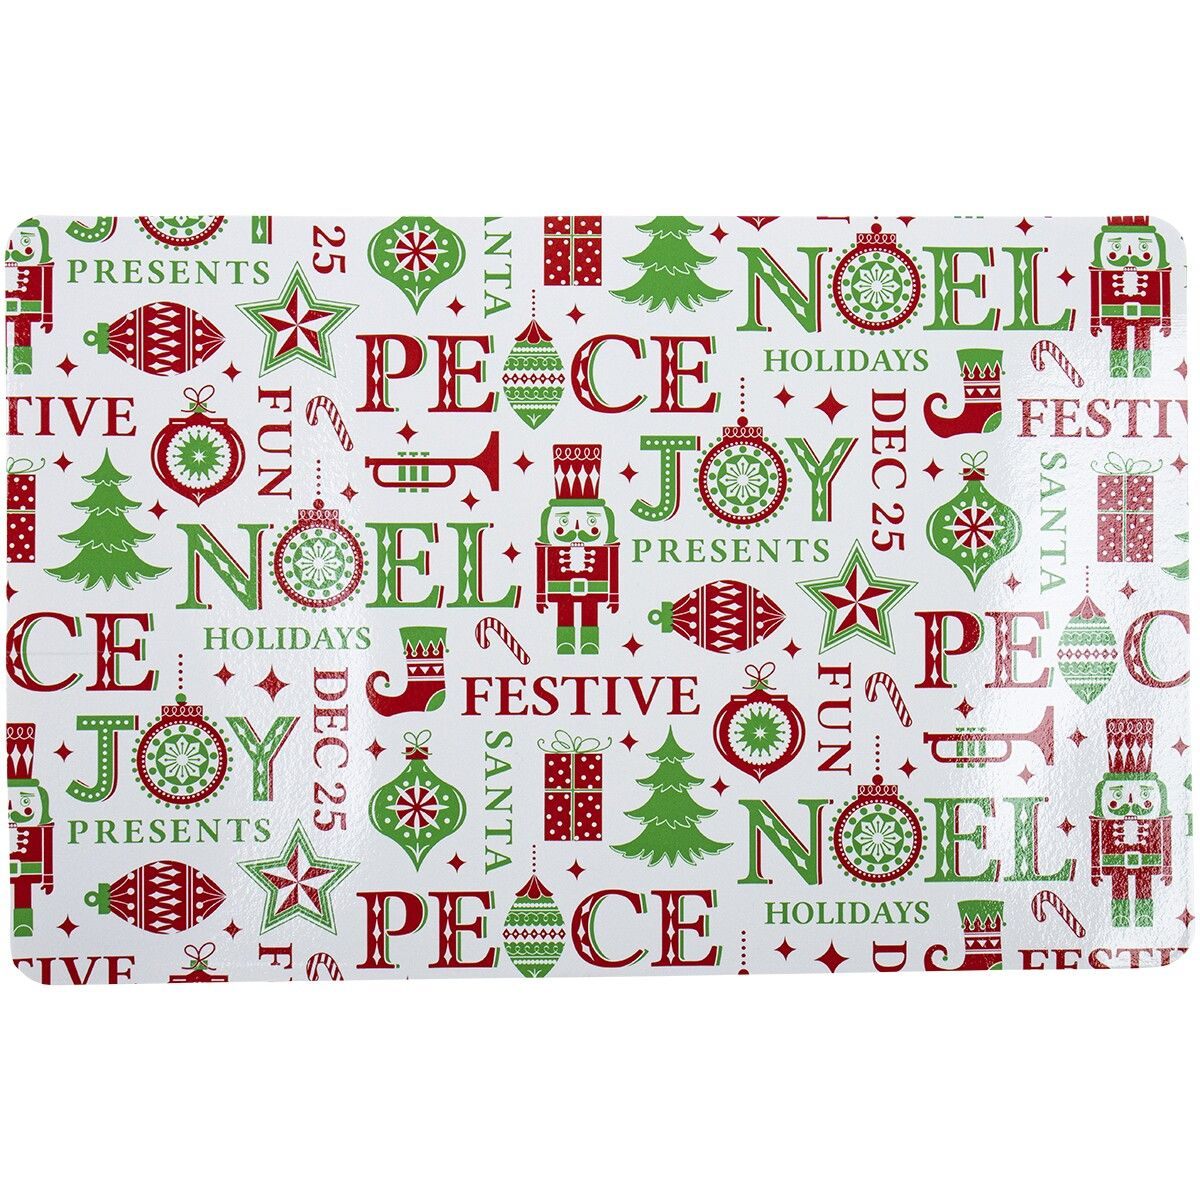 Christmas Pvc Festive Placemat White In 2020 Placemats Christmas Articles Christmas Table